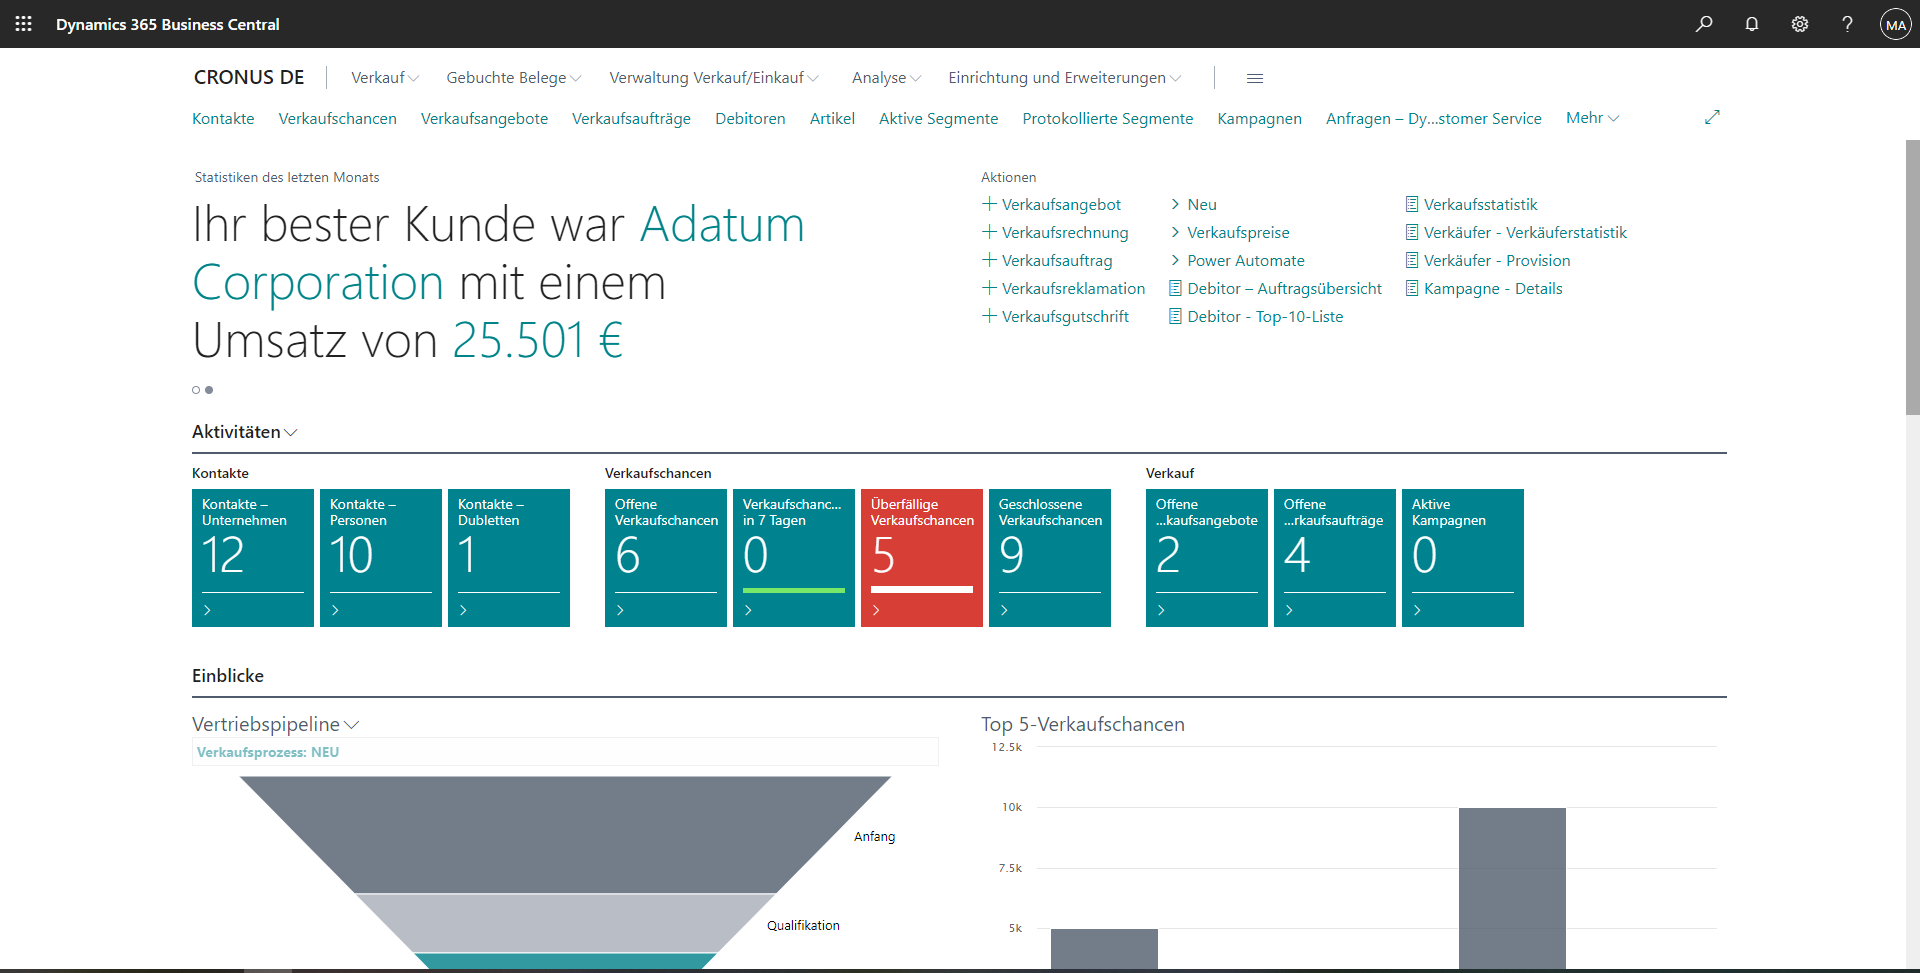 Dynamics 365 Business Central Dashboard